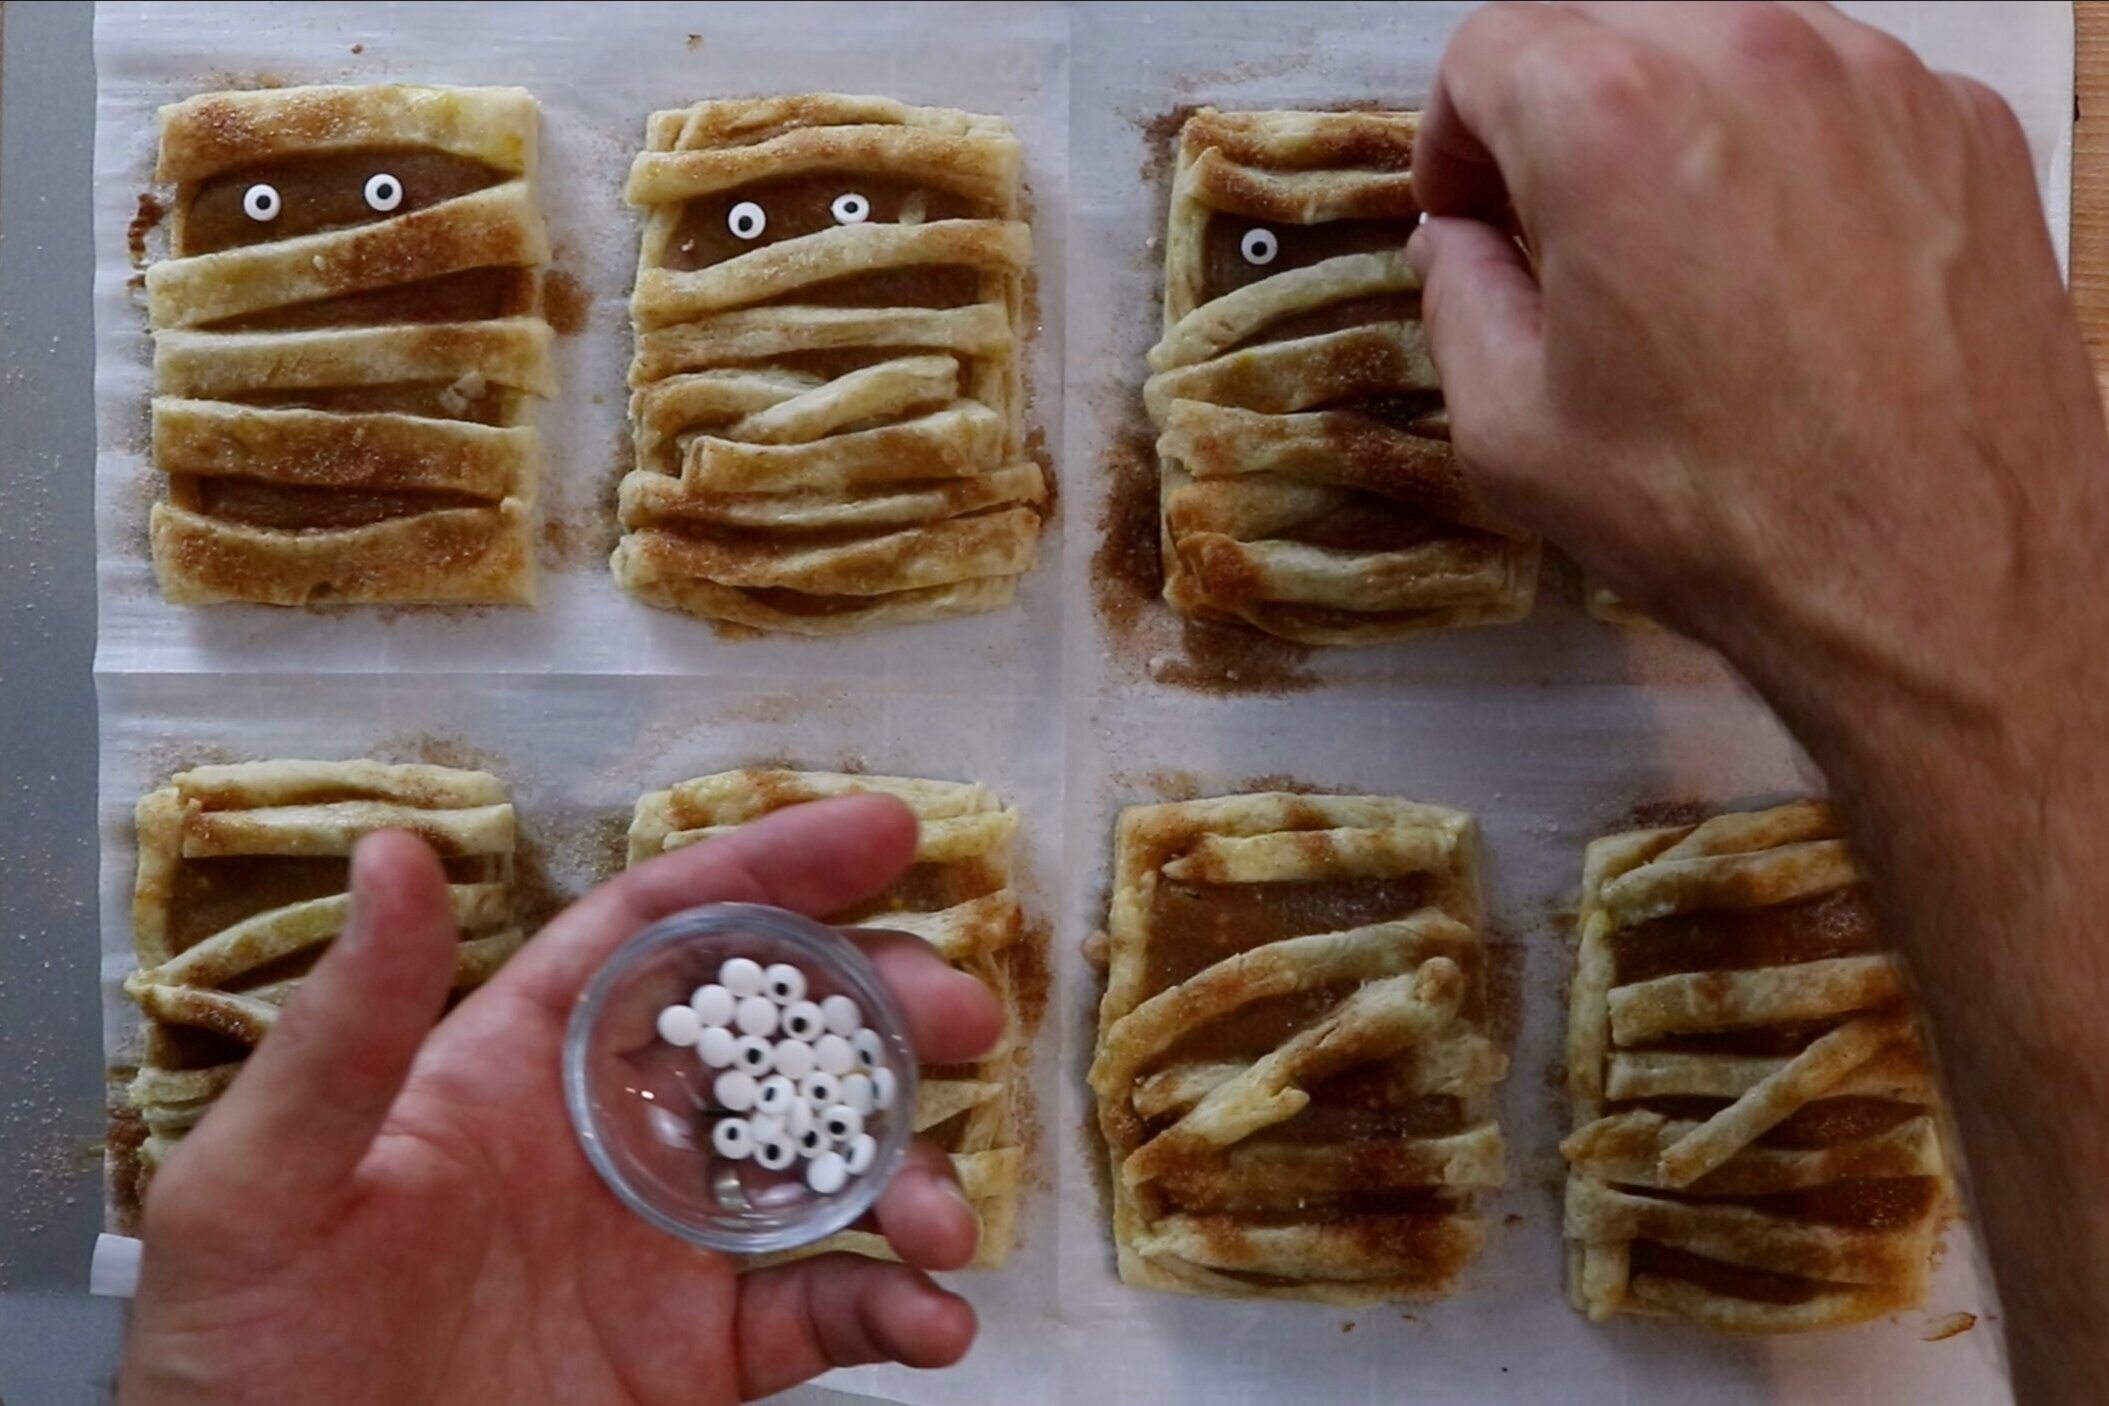 10. Remove from oven and let cool for minutes. Add candy eyes. -